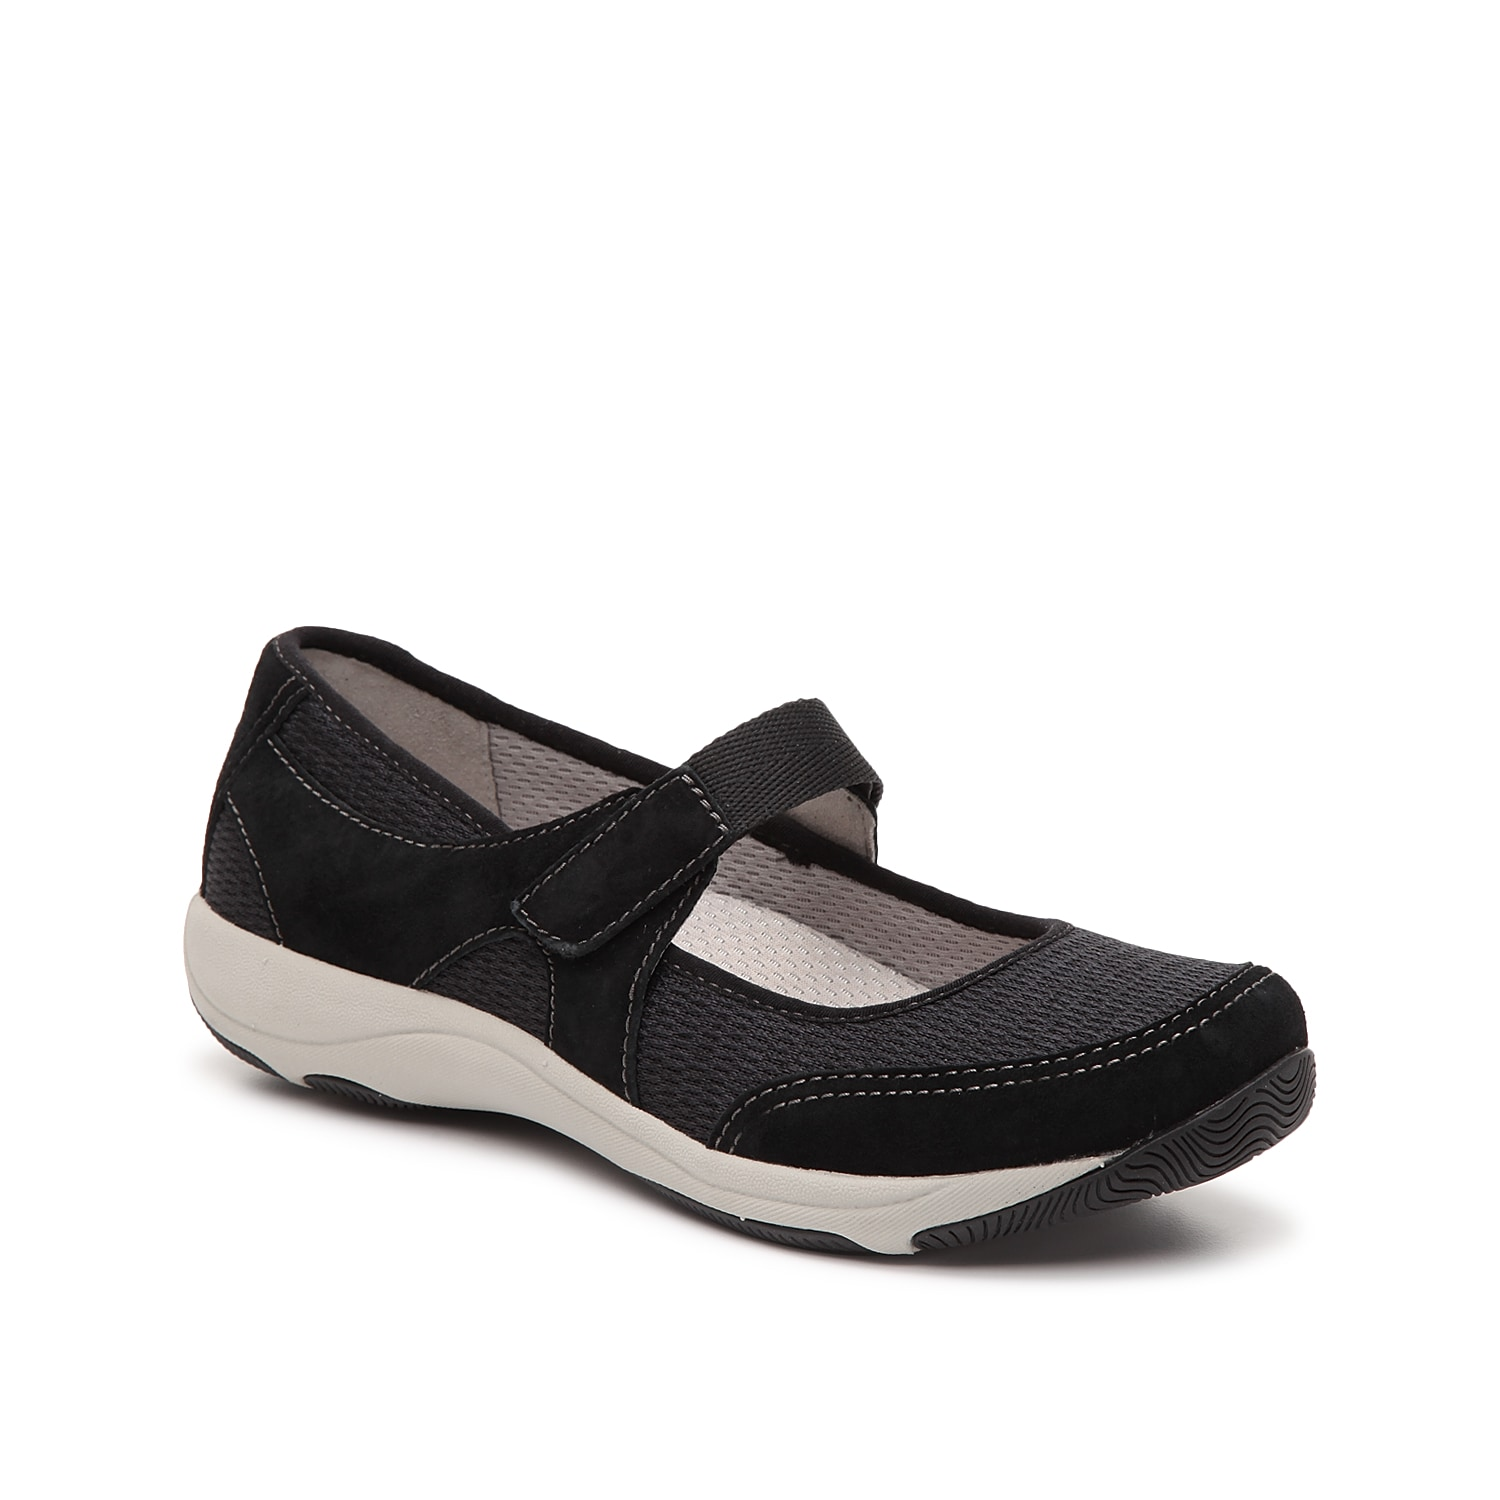 Cushioned steps come easy with the Hennie slip-on from Dansko. This silhouette is fashioned with a suede and mesh construction with a removable insole for all the comfort!